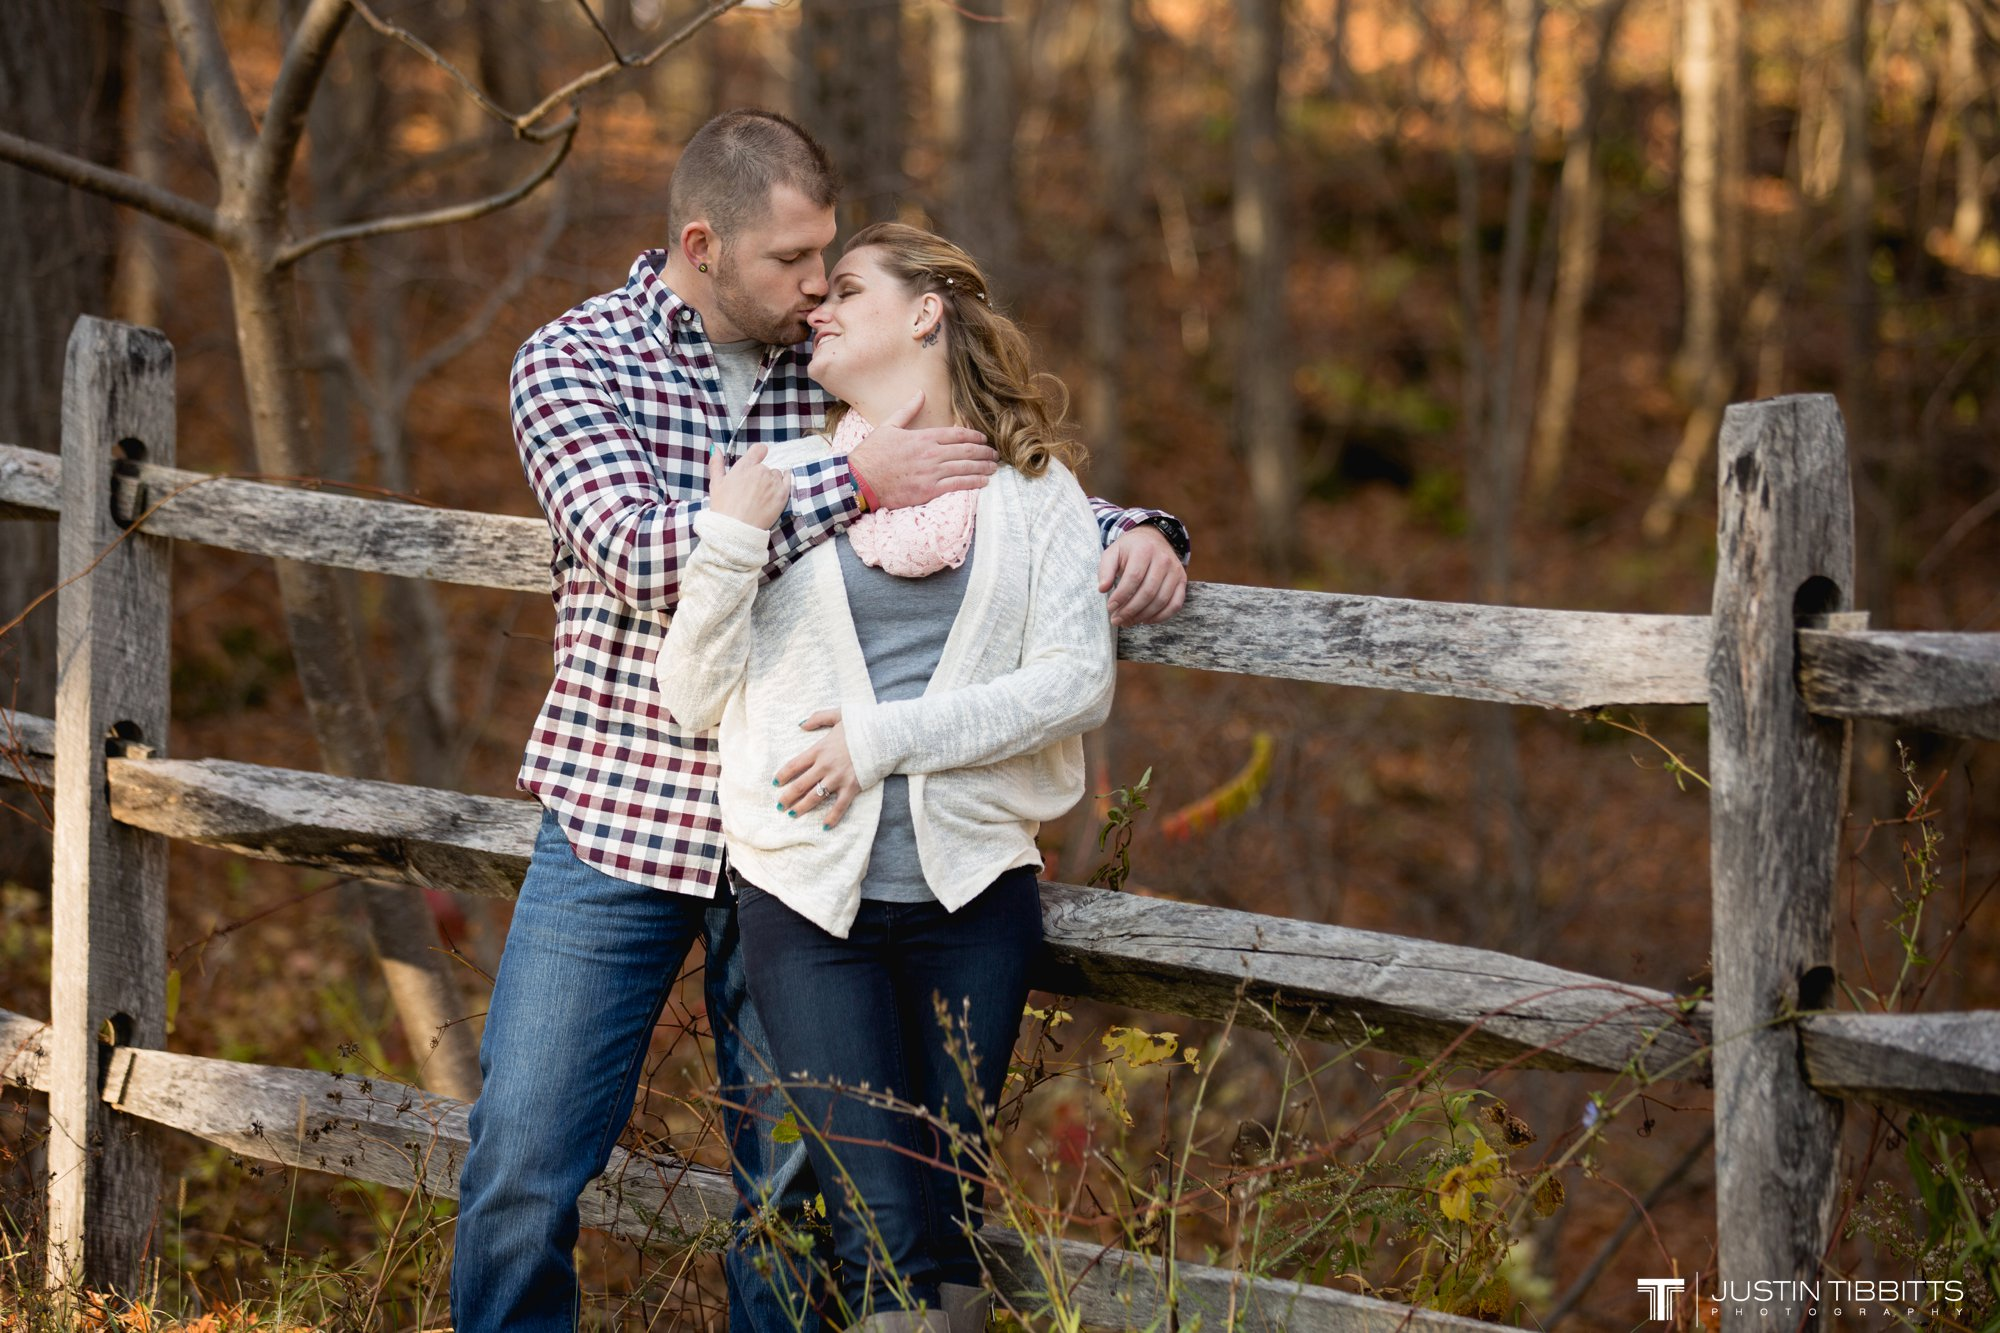 Justin Tibbitts Photography Ashlee and Steves Thatcher Park, New York Engagement Shoot-71